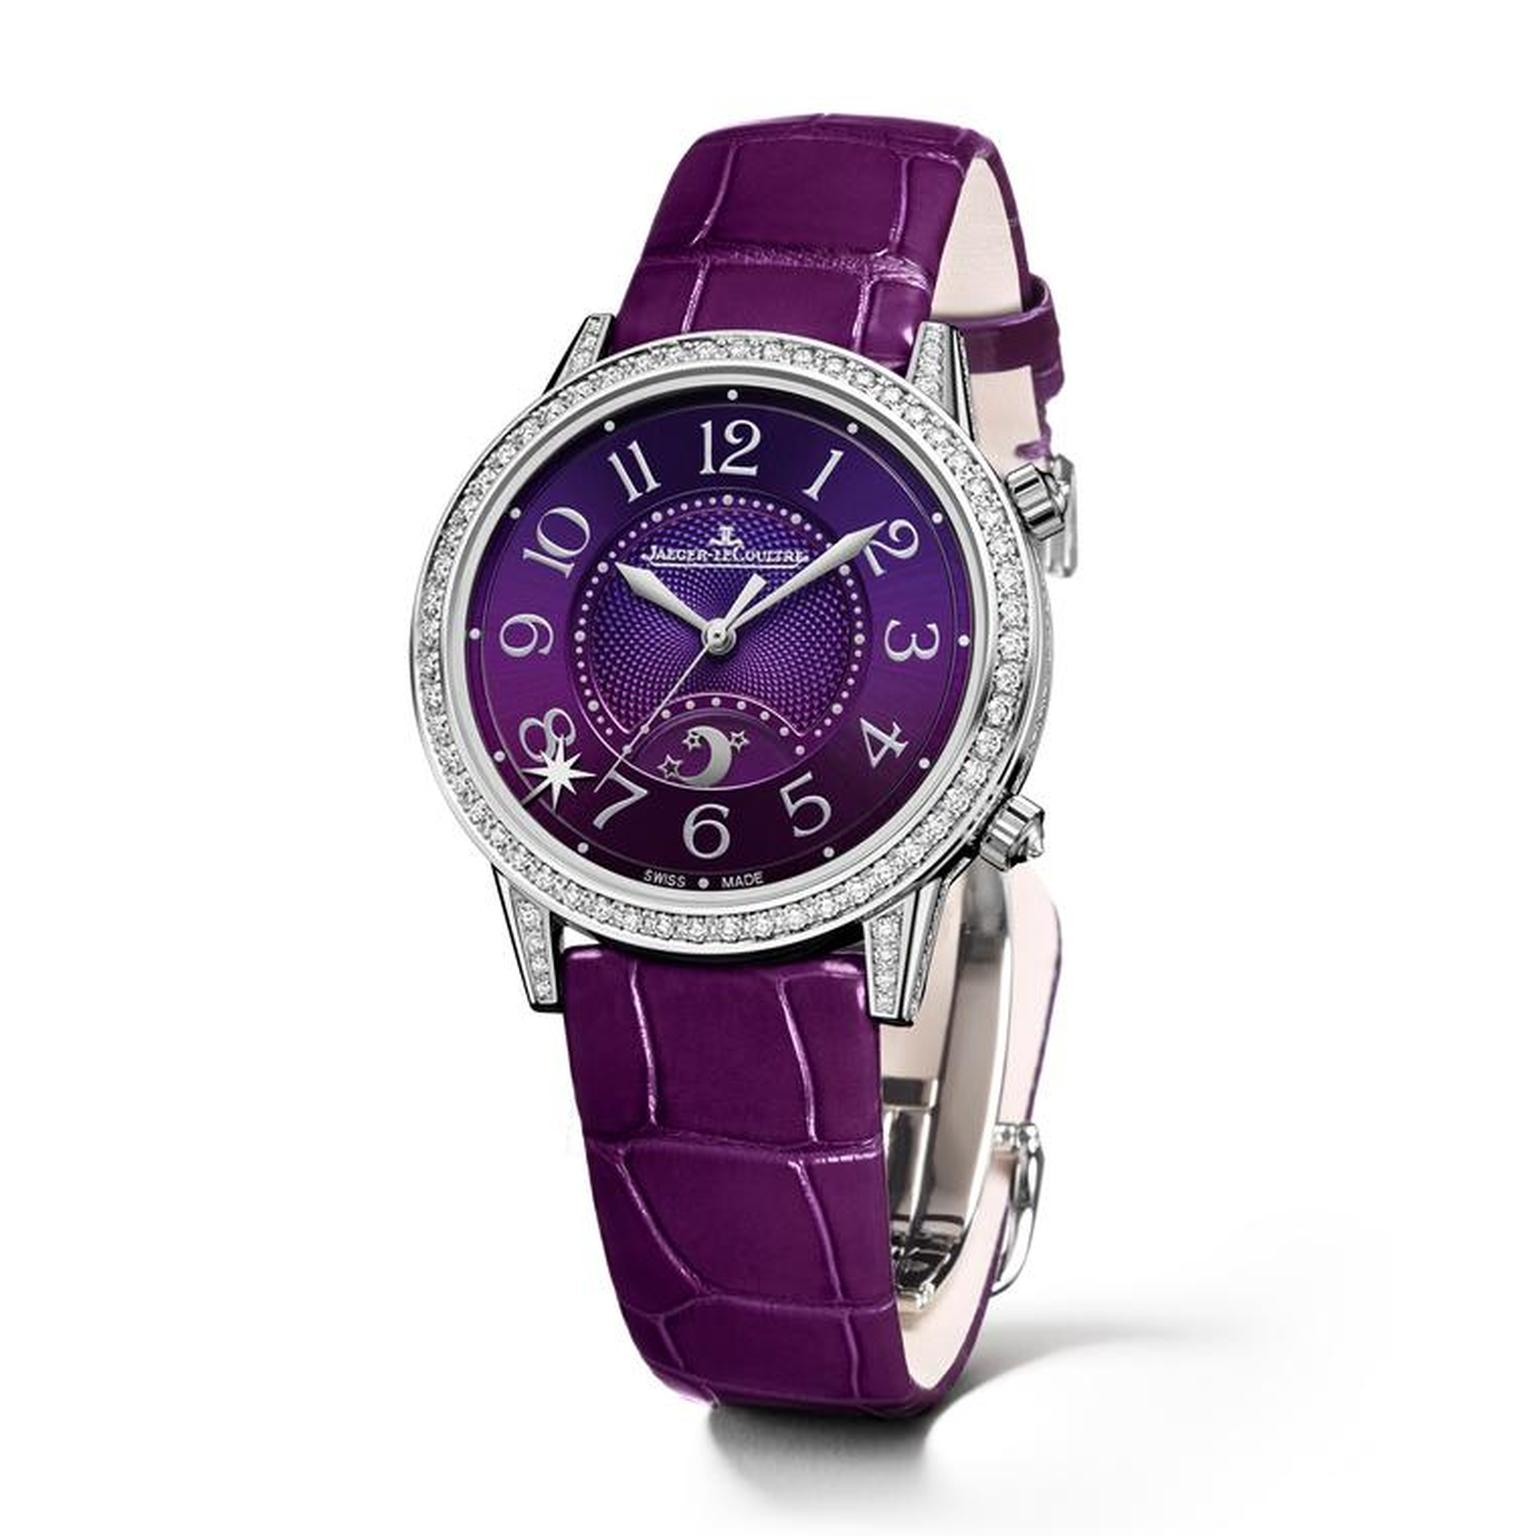 Jaeger-Le-Coultre Rendez-Vous Sonatina with purple dial